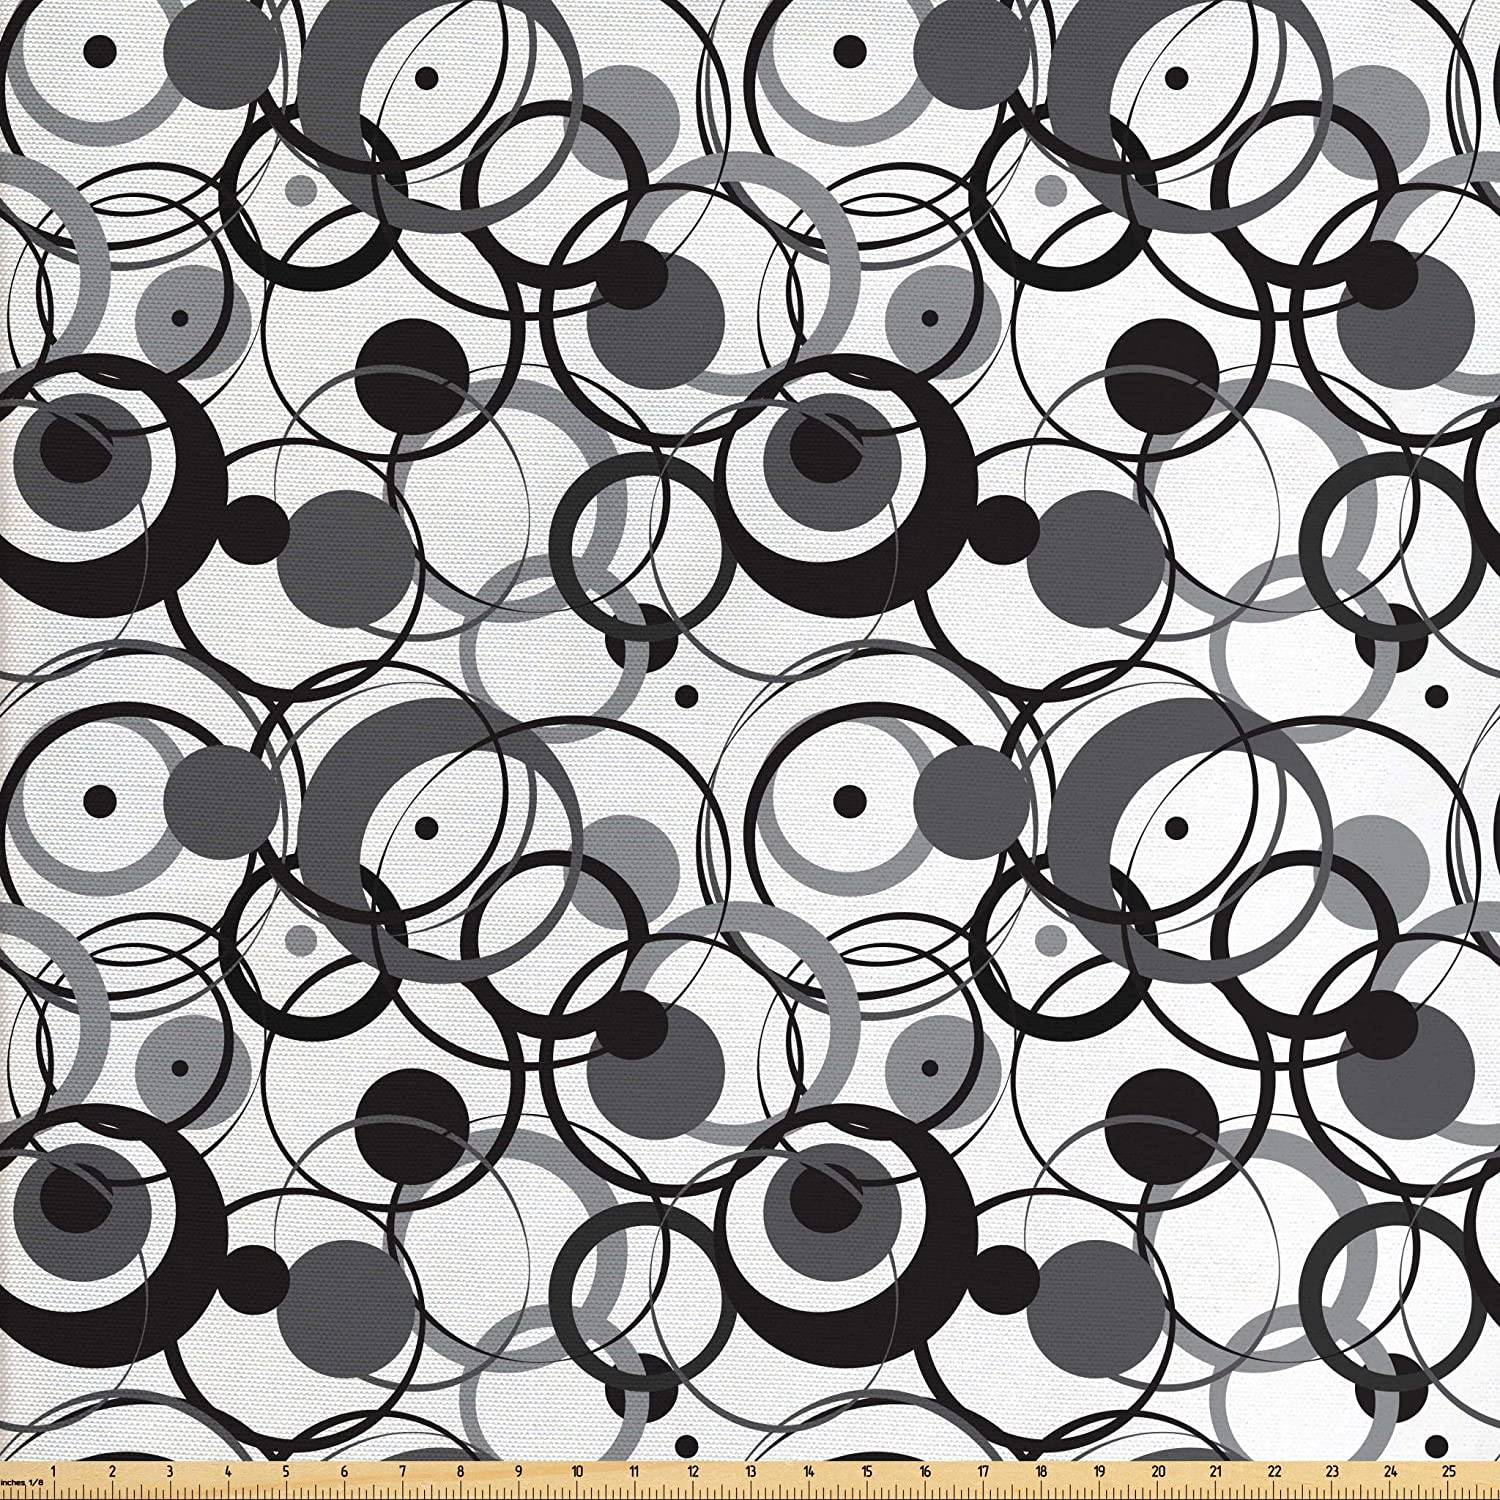 Ambesonne Abstract Fabric by The Yard, Monochrome Circles Dots Surreal Expressionism Inspired Geometric Modern Art, Decorative Fabric for Upholstery and Home Accents, 1 Yard, Monochrome